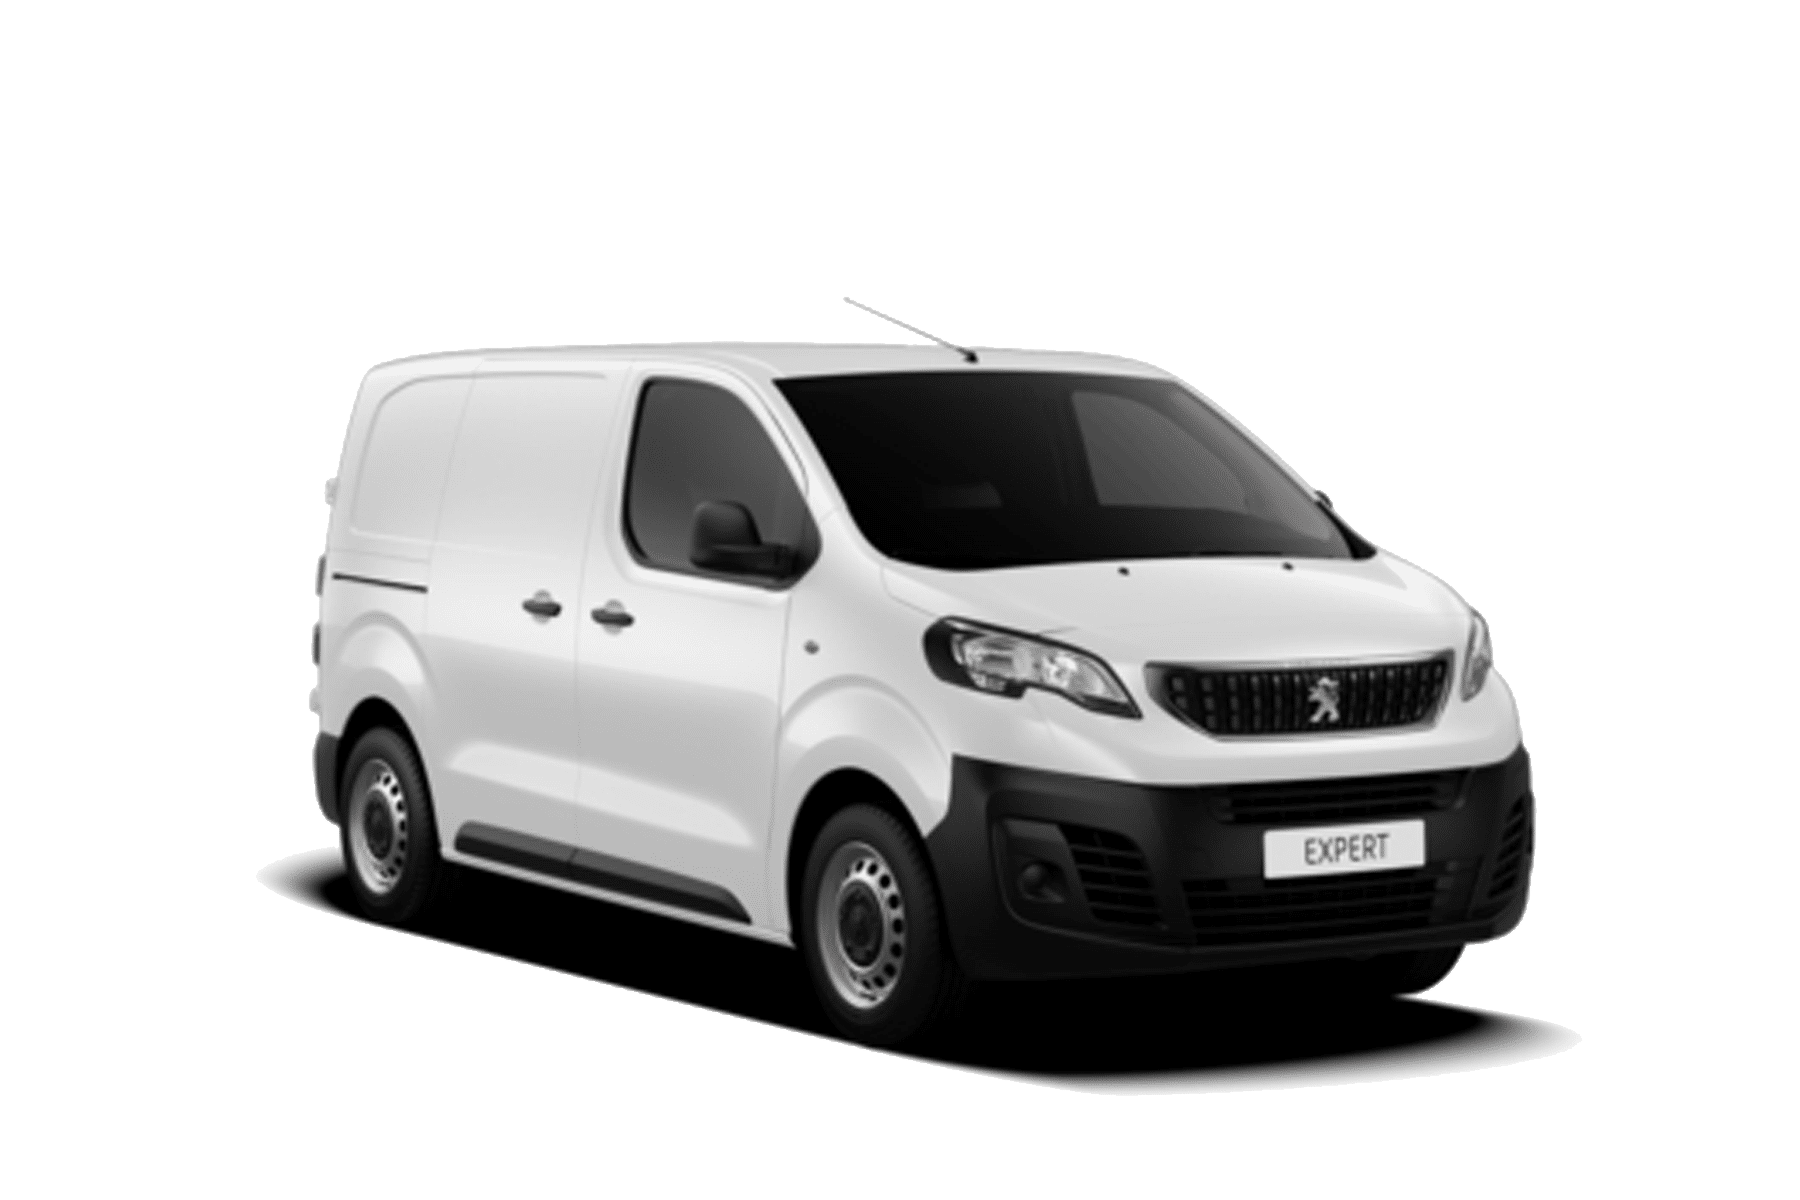 Nuovo Peugeot Expert